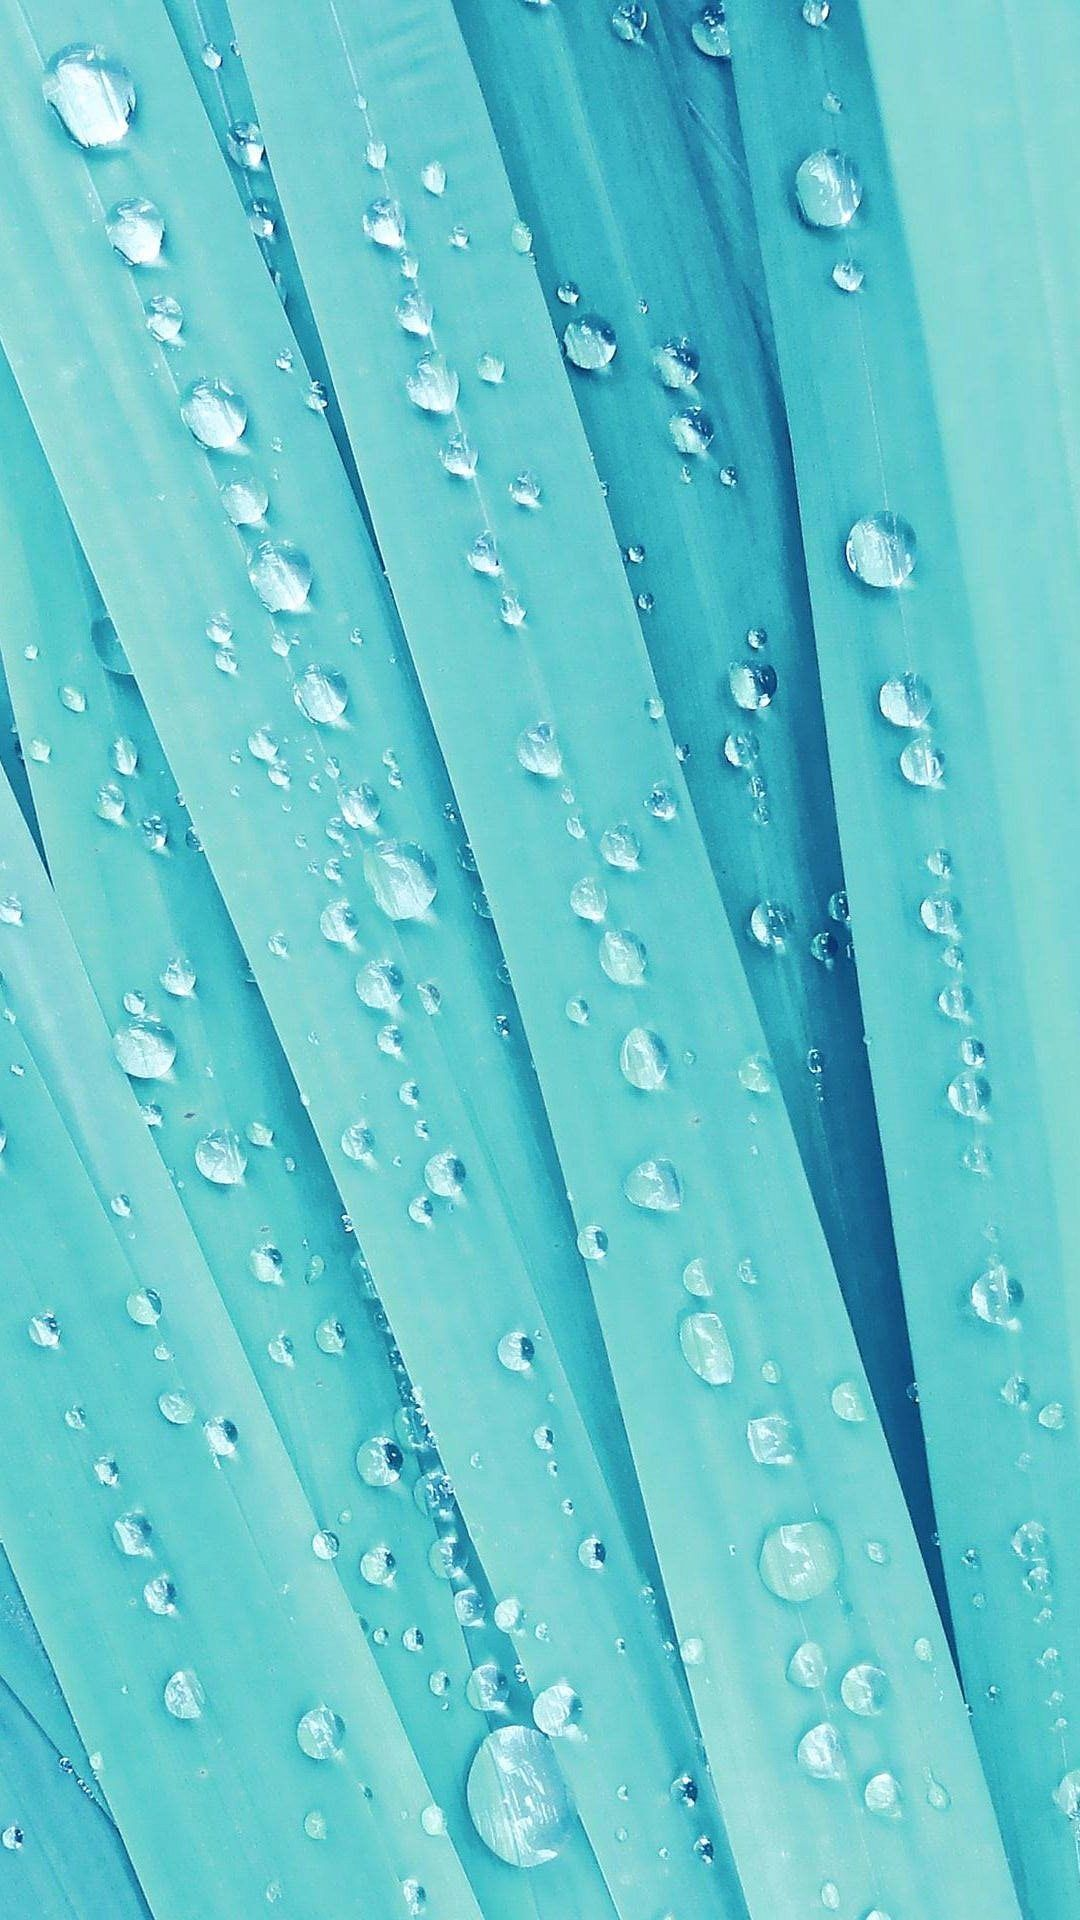 Skyblue Color Filtered Grass With Waterdrops Tap To See More